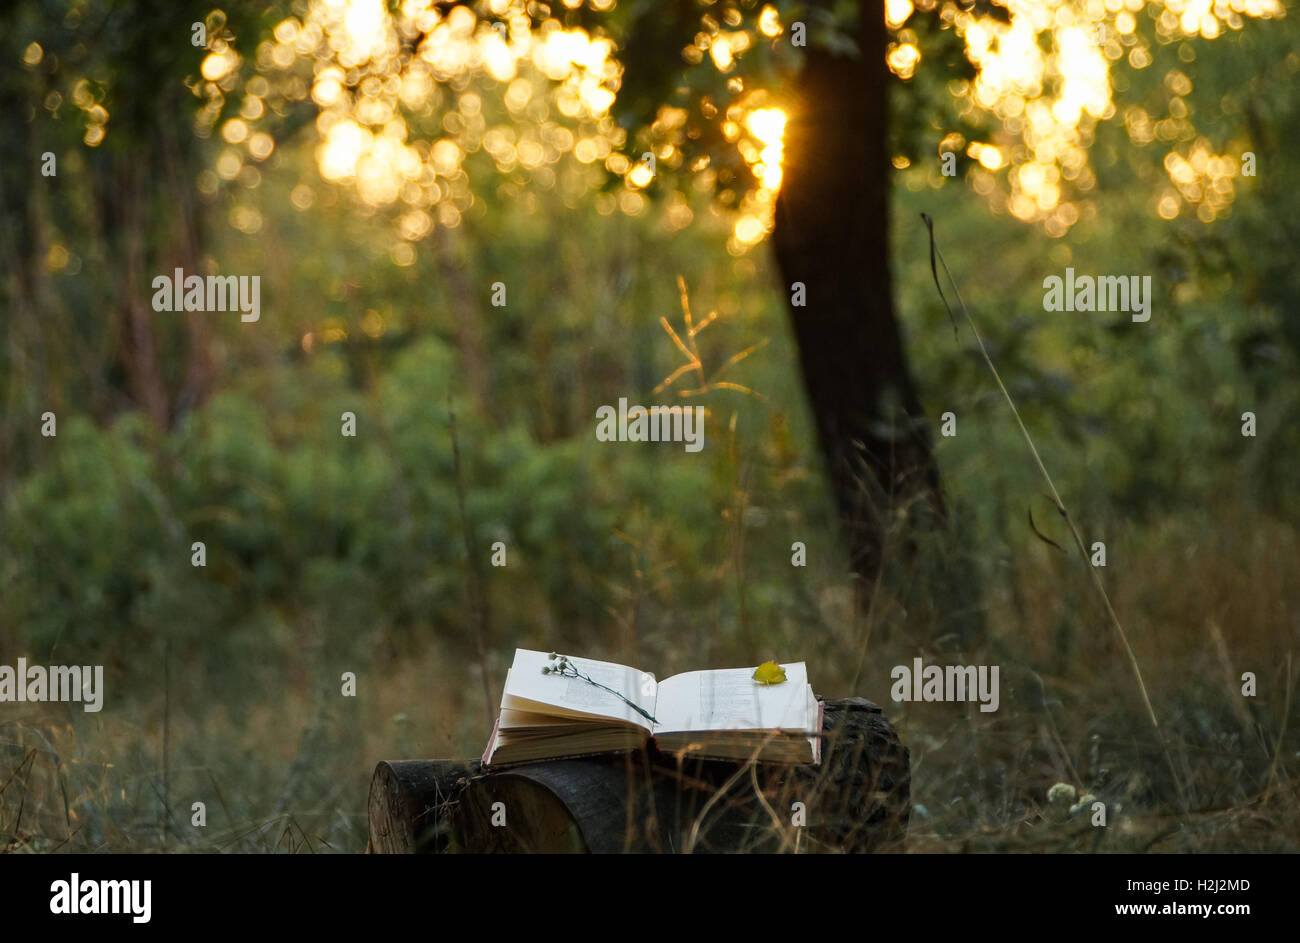 Poetry book under tree and blurs of  summer sunset background - Stock Image